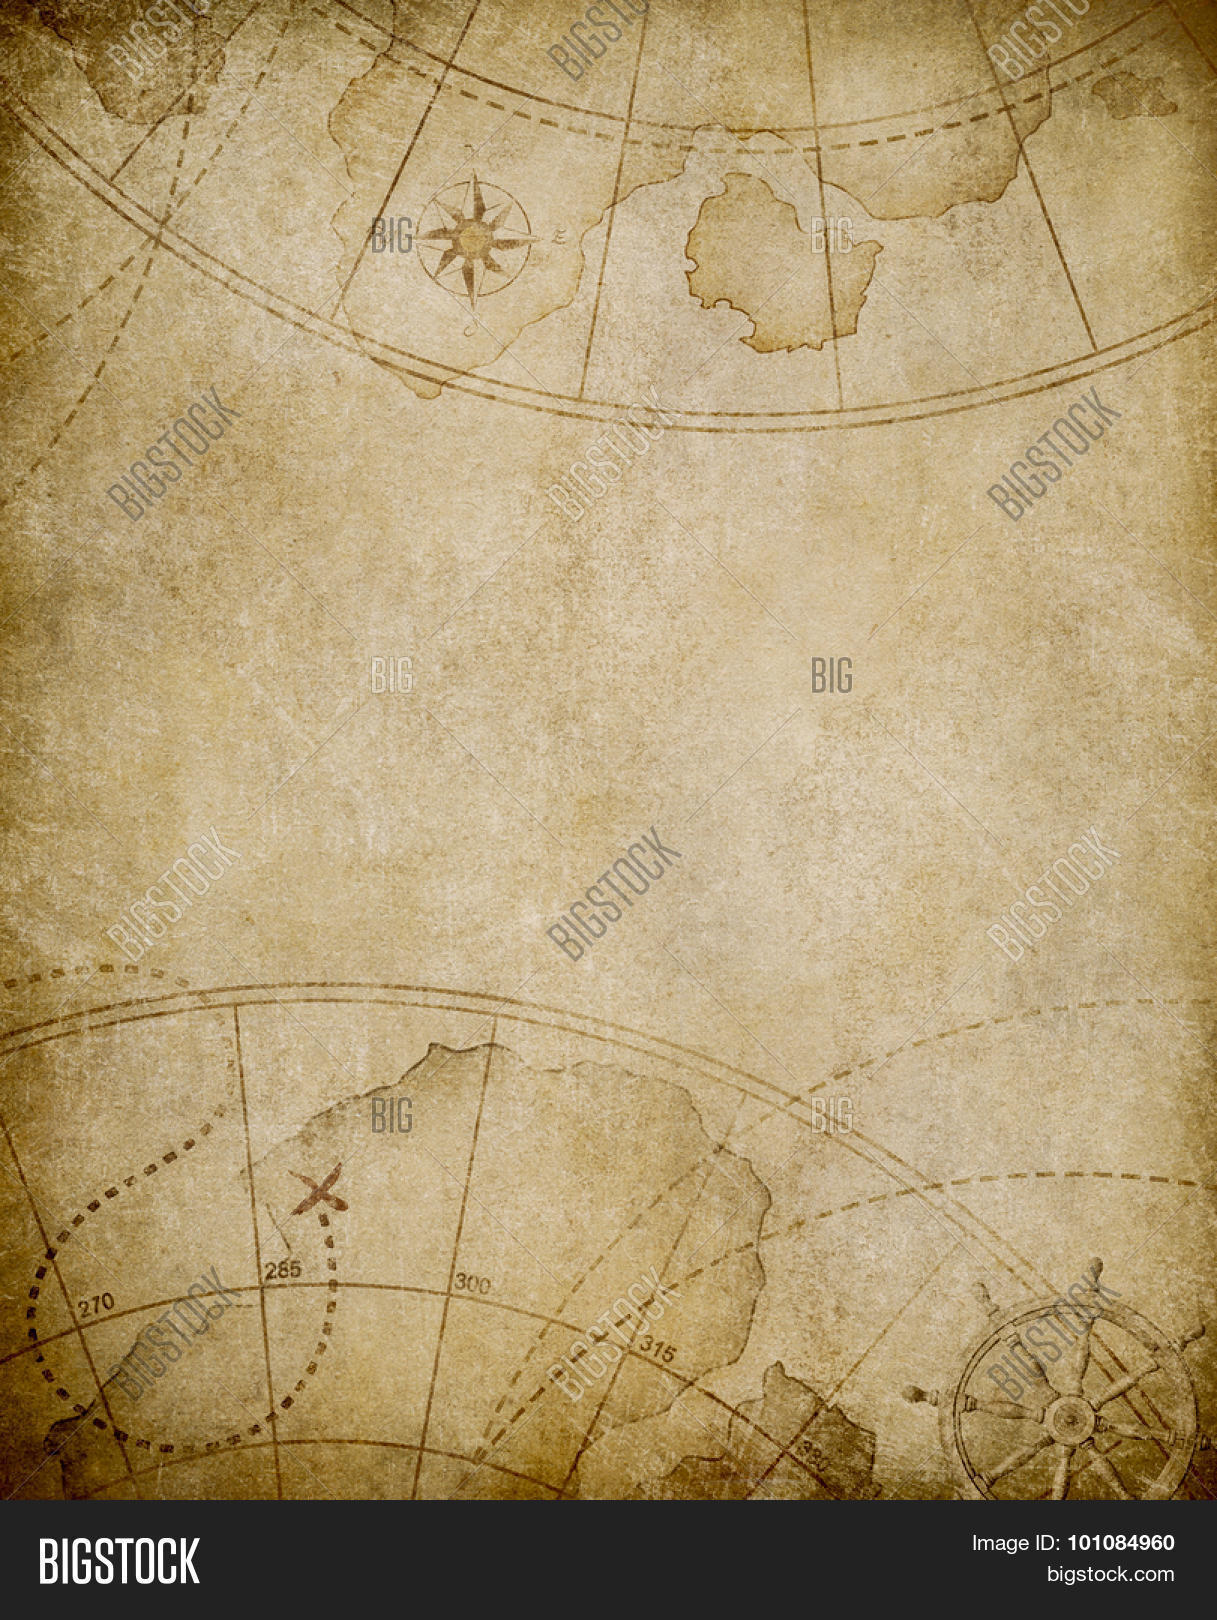 Old Map Background Image & Photo (Free Trial) | Bigstock Old Map Background on magazine background, newspaper background, old nautical maps, paper background, wood background, old world cartography, key background, old wallpaper, bouquet background, old compass, old boats, old us highway maps, old treasure maps, space background, city background,